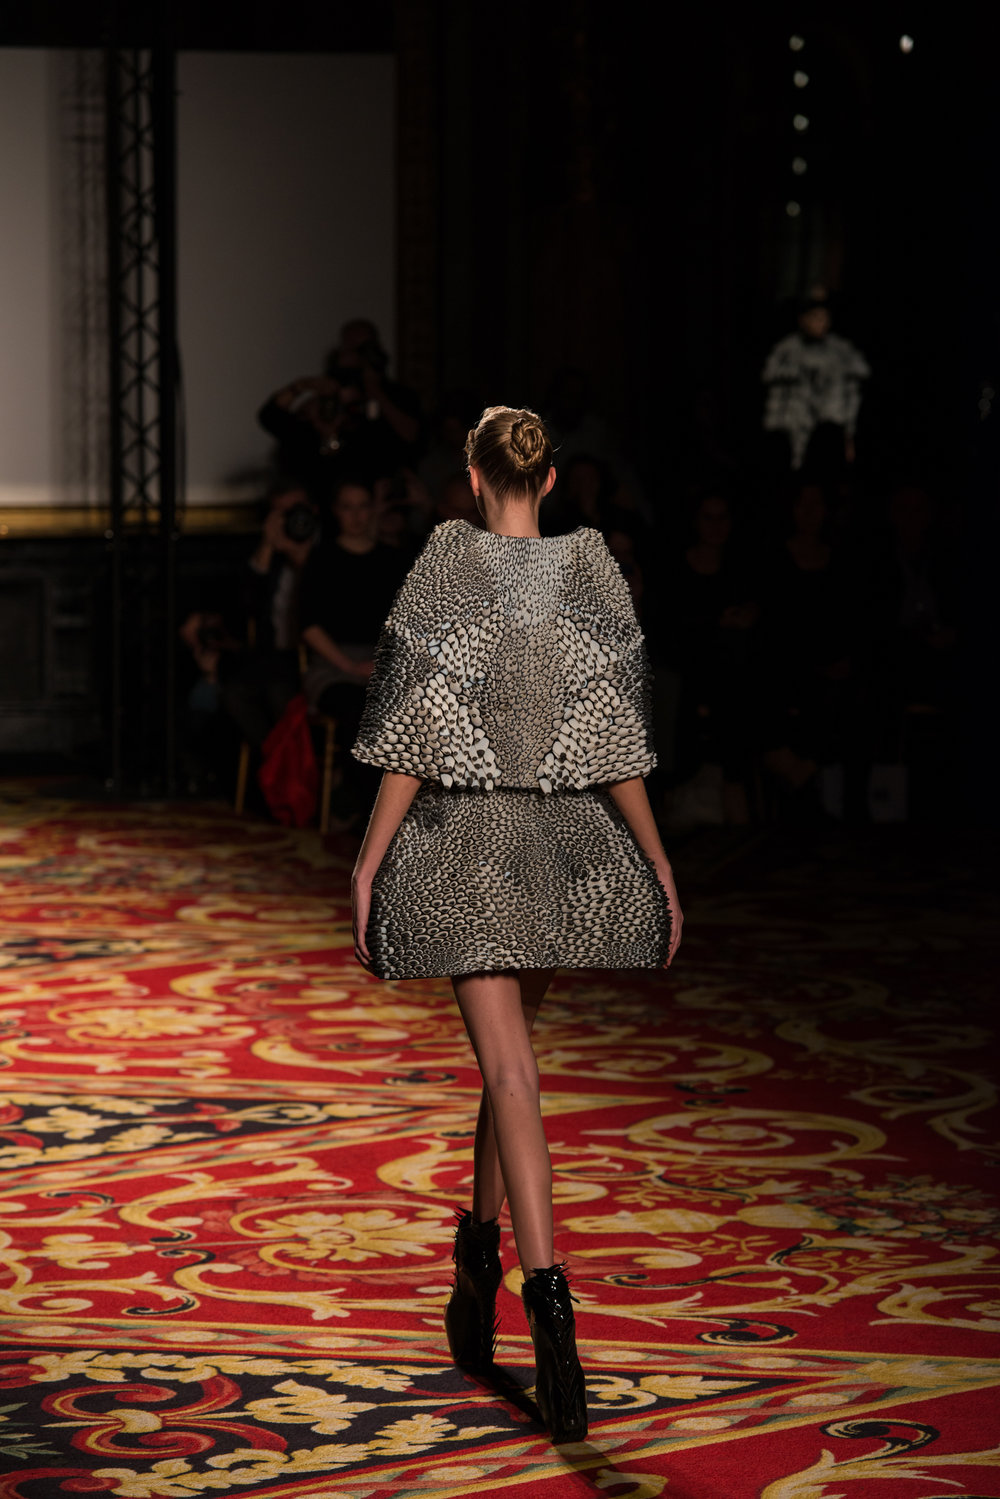 Stratasys-3D-Printed-Cape&Skirt-with-Objet-Connex-Multi-material-3DPrinted-Technology5_300dpi.jpg